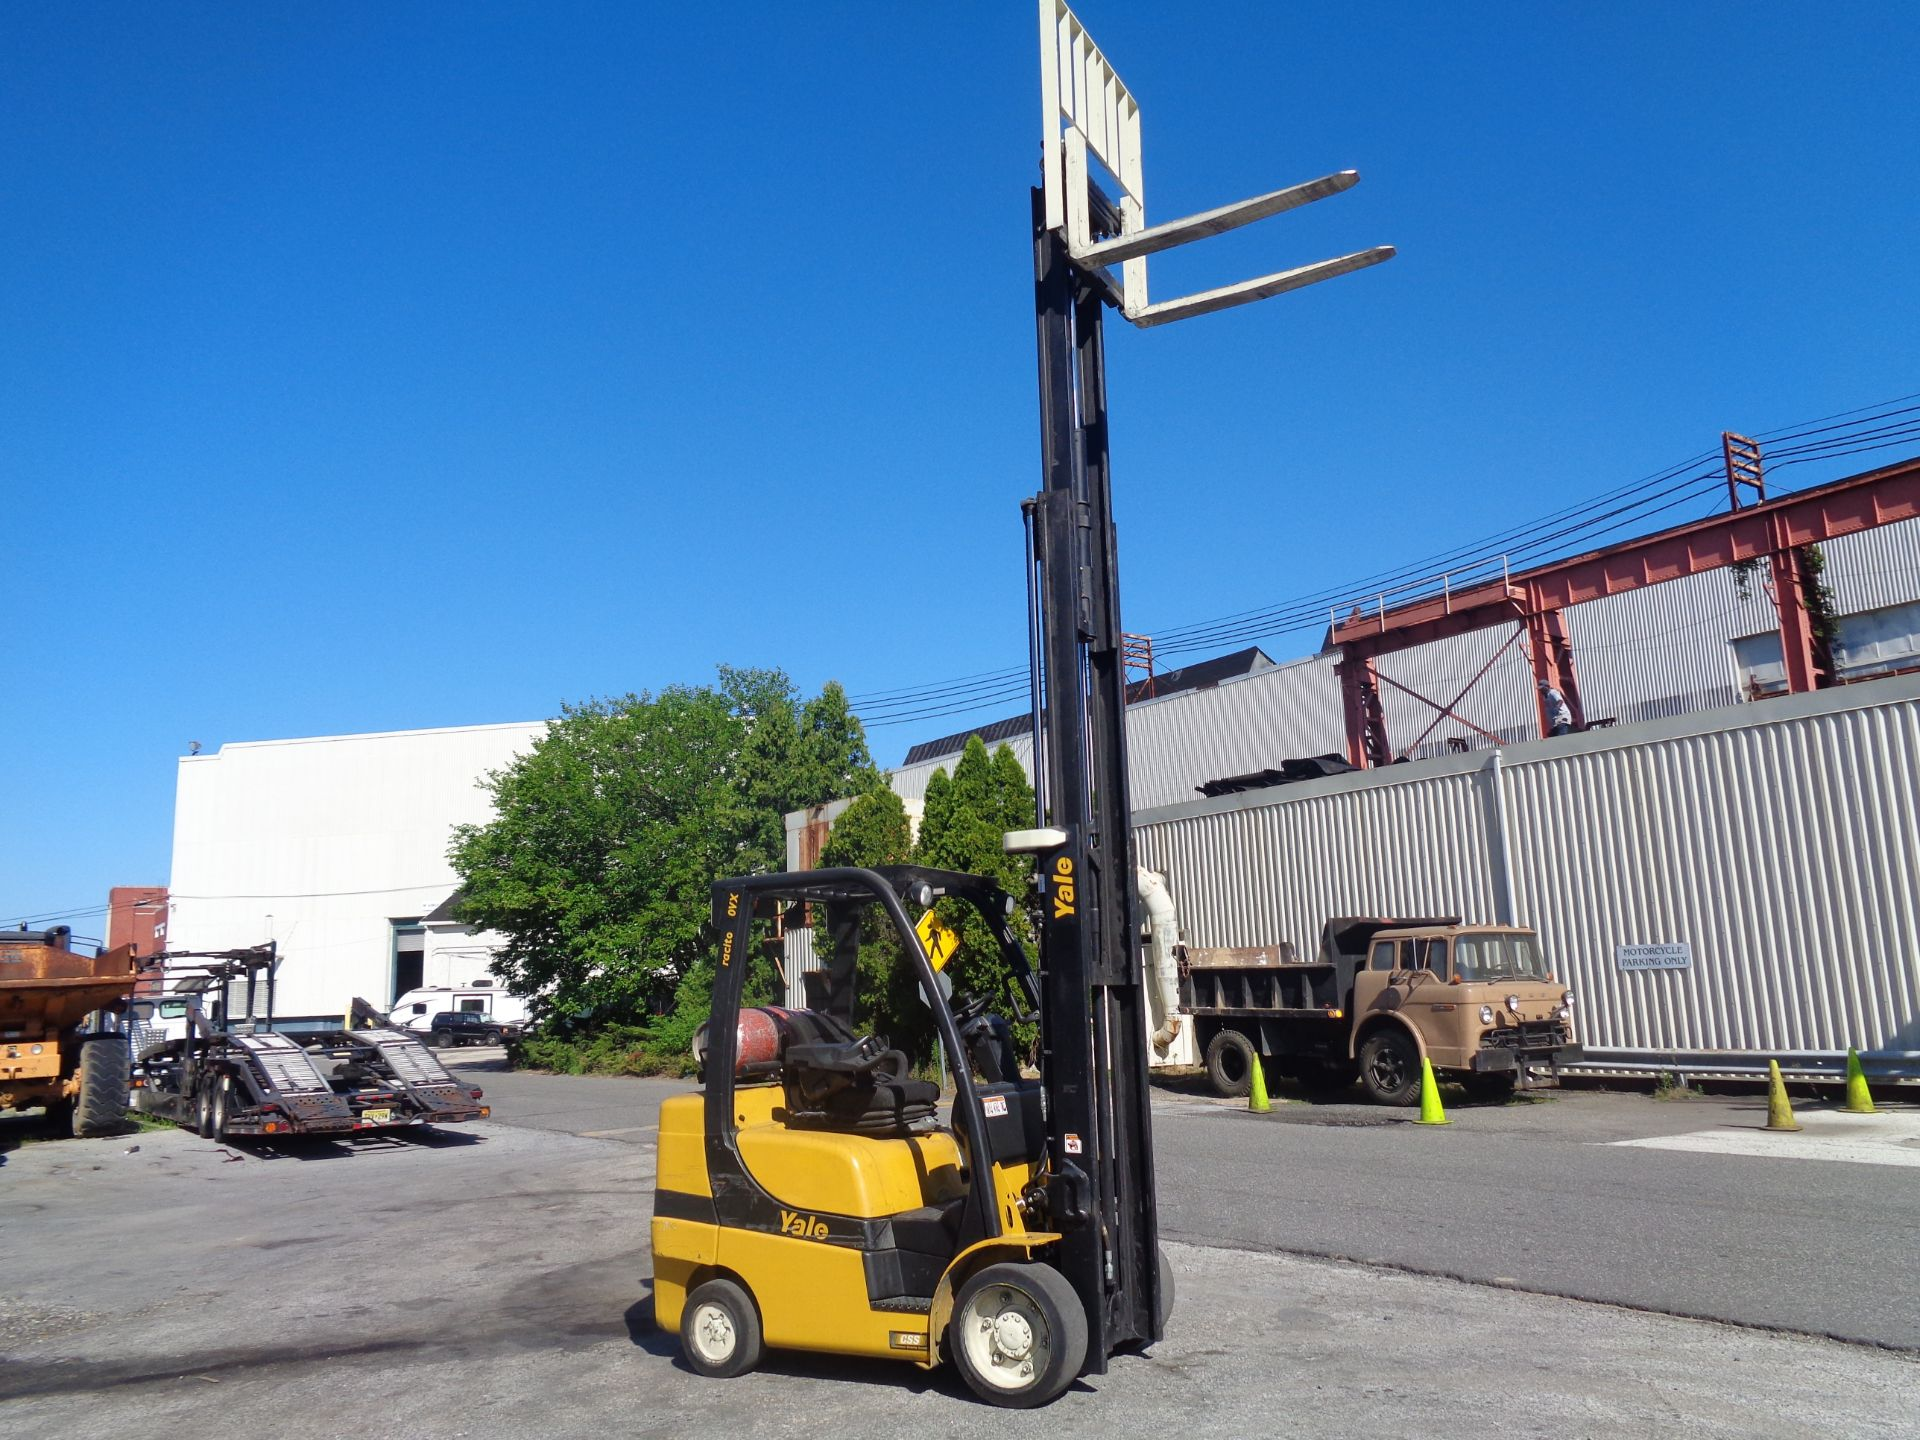 2014 Yale GLC070VXNGSE088 7,000 lbs Forklift - Image 8 of 12